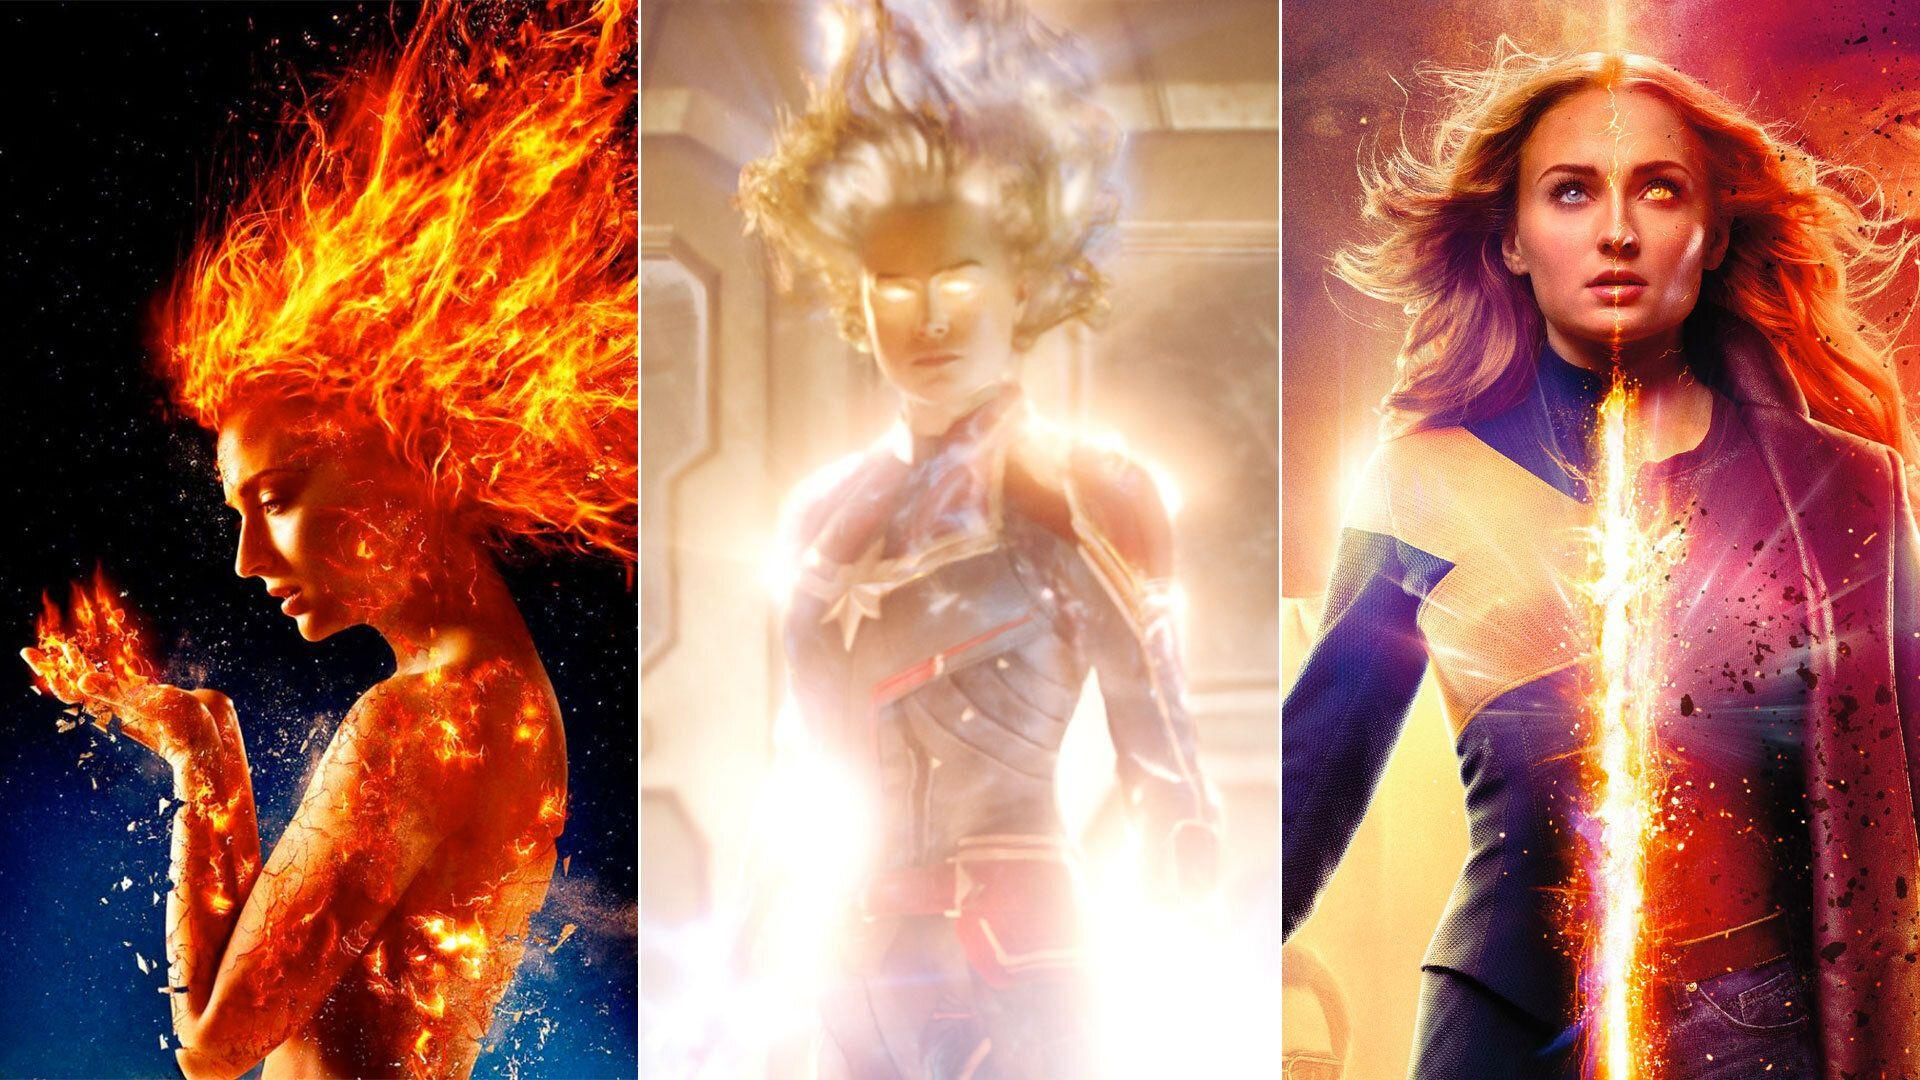 Flame on: Early <i>Dark Phoenix</i> publicity stills showed a much more fiery look for Jean Grey. This has been changed in the final film for something very different. (20th Century Fox/Marvel Studios)